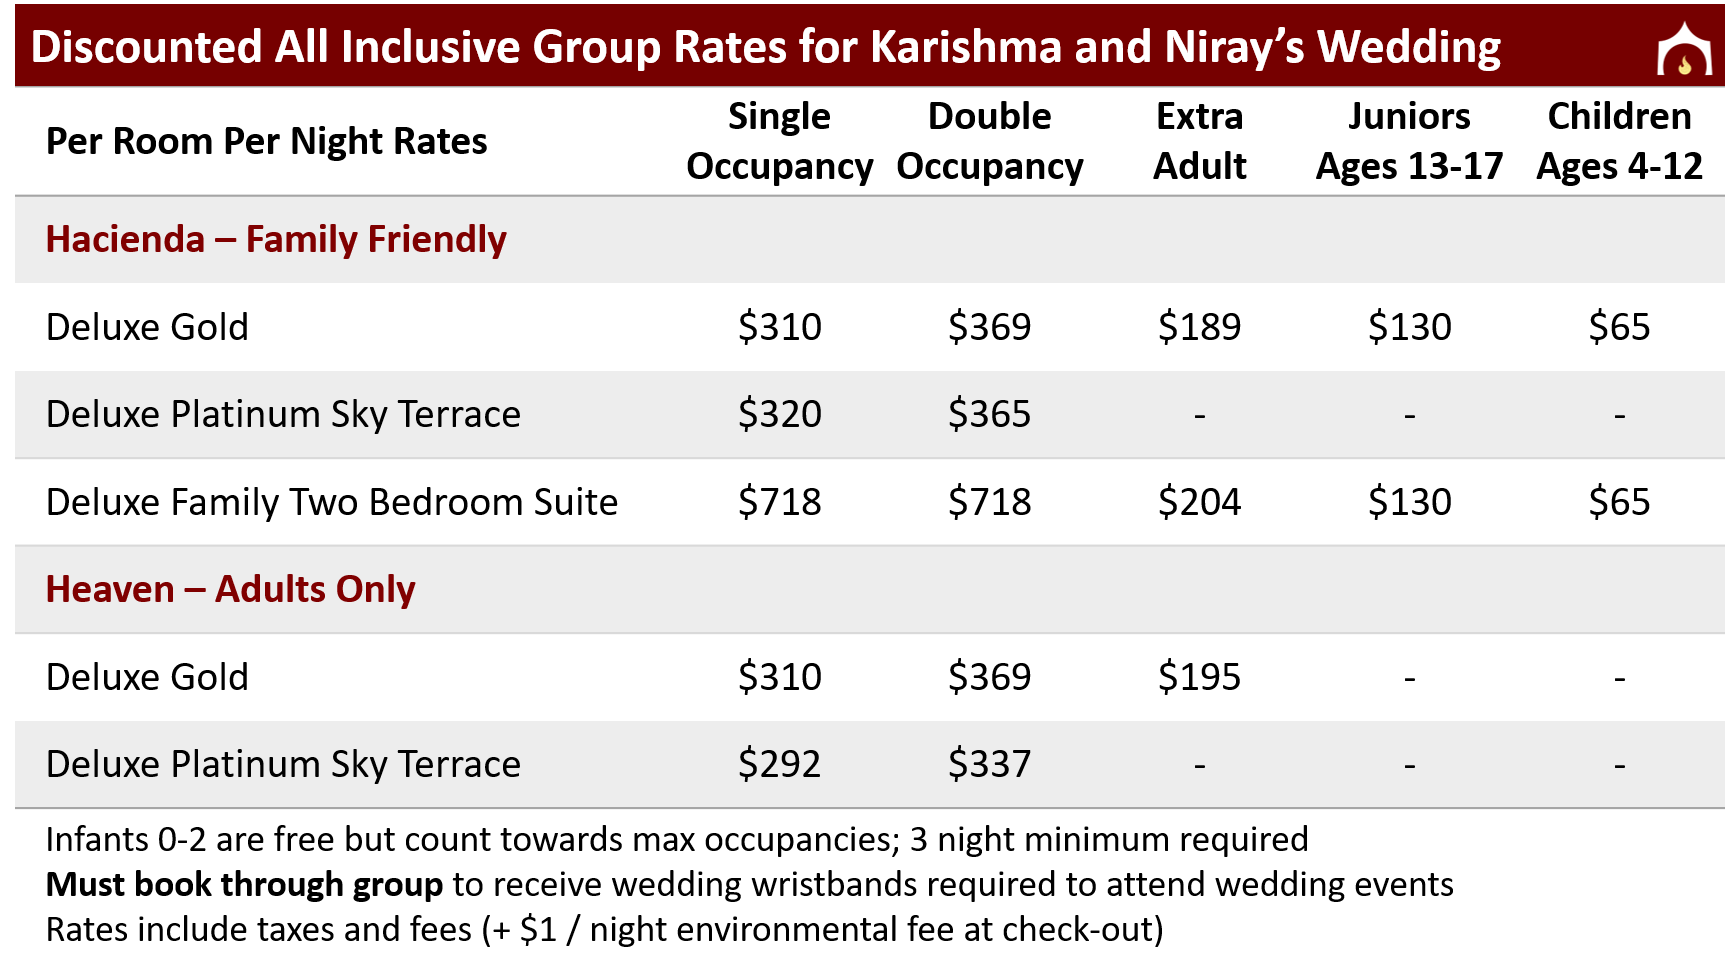 Discounted Group Rates for Karishma and Niray's Wedding v3.png